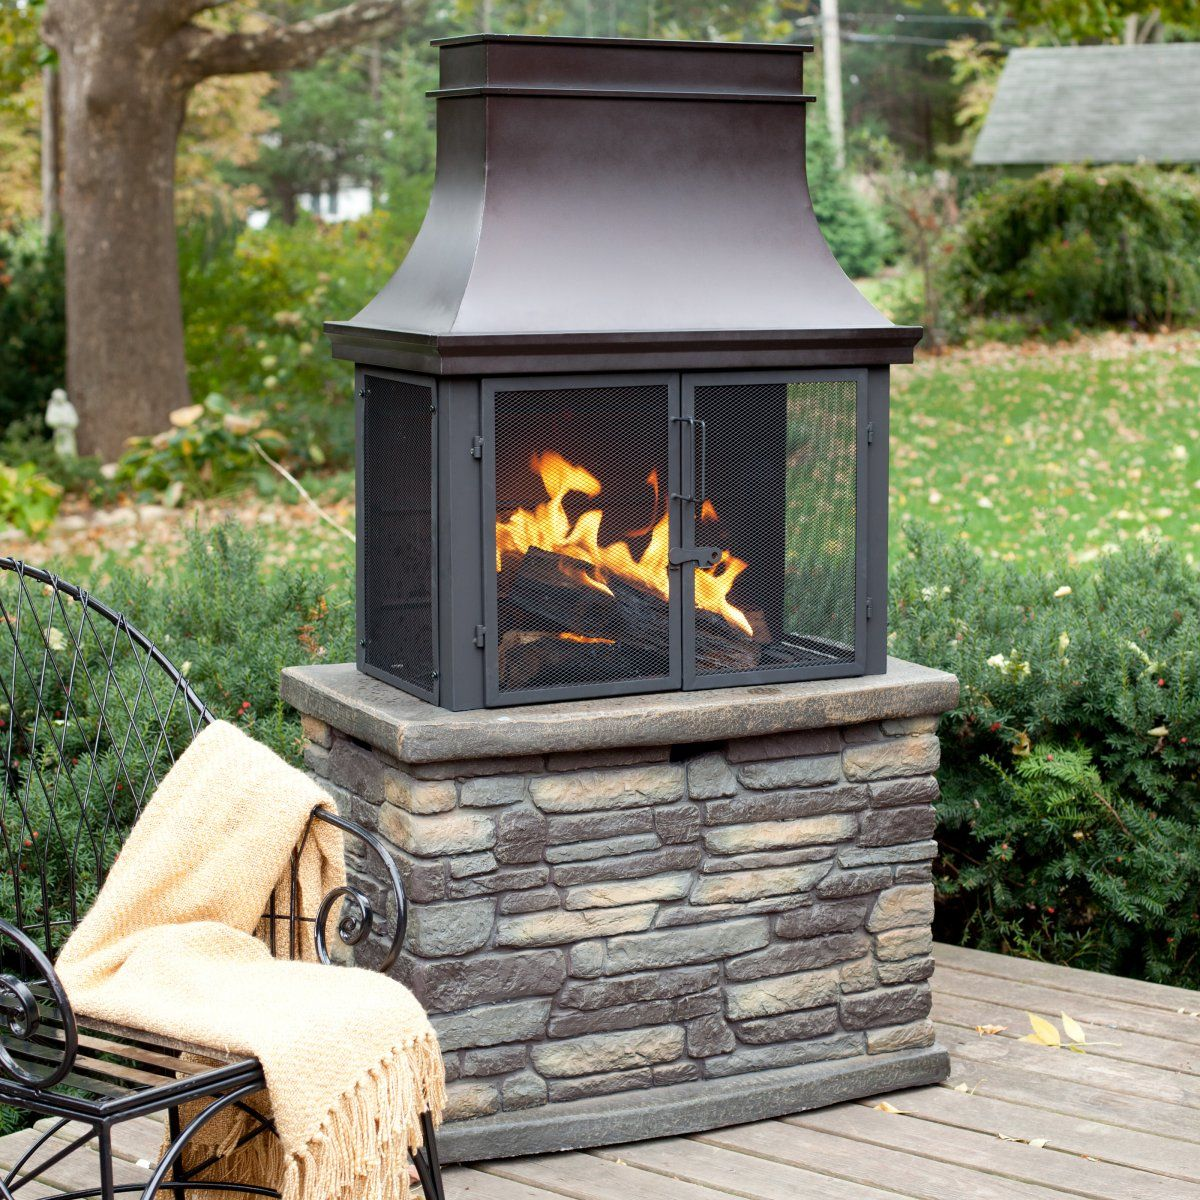 bond wood burning fireplace - outdoor fireplaces & chimineas at